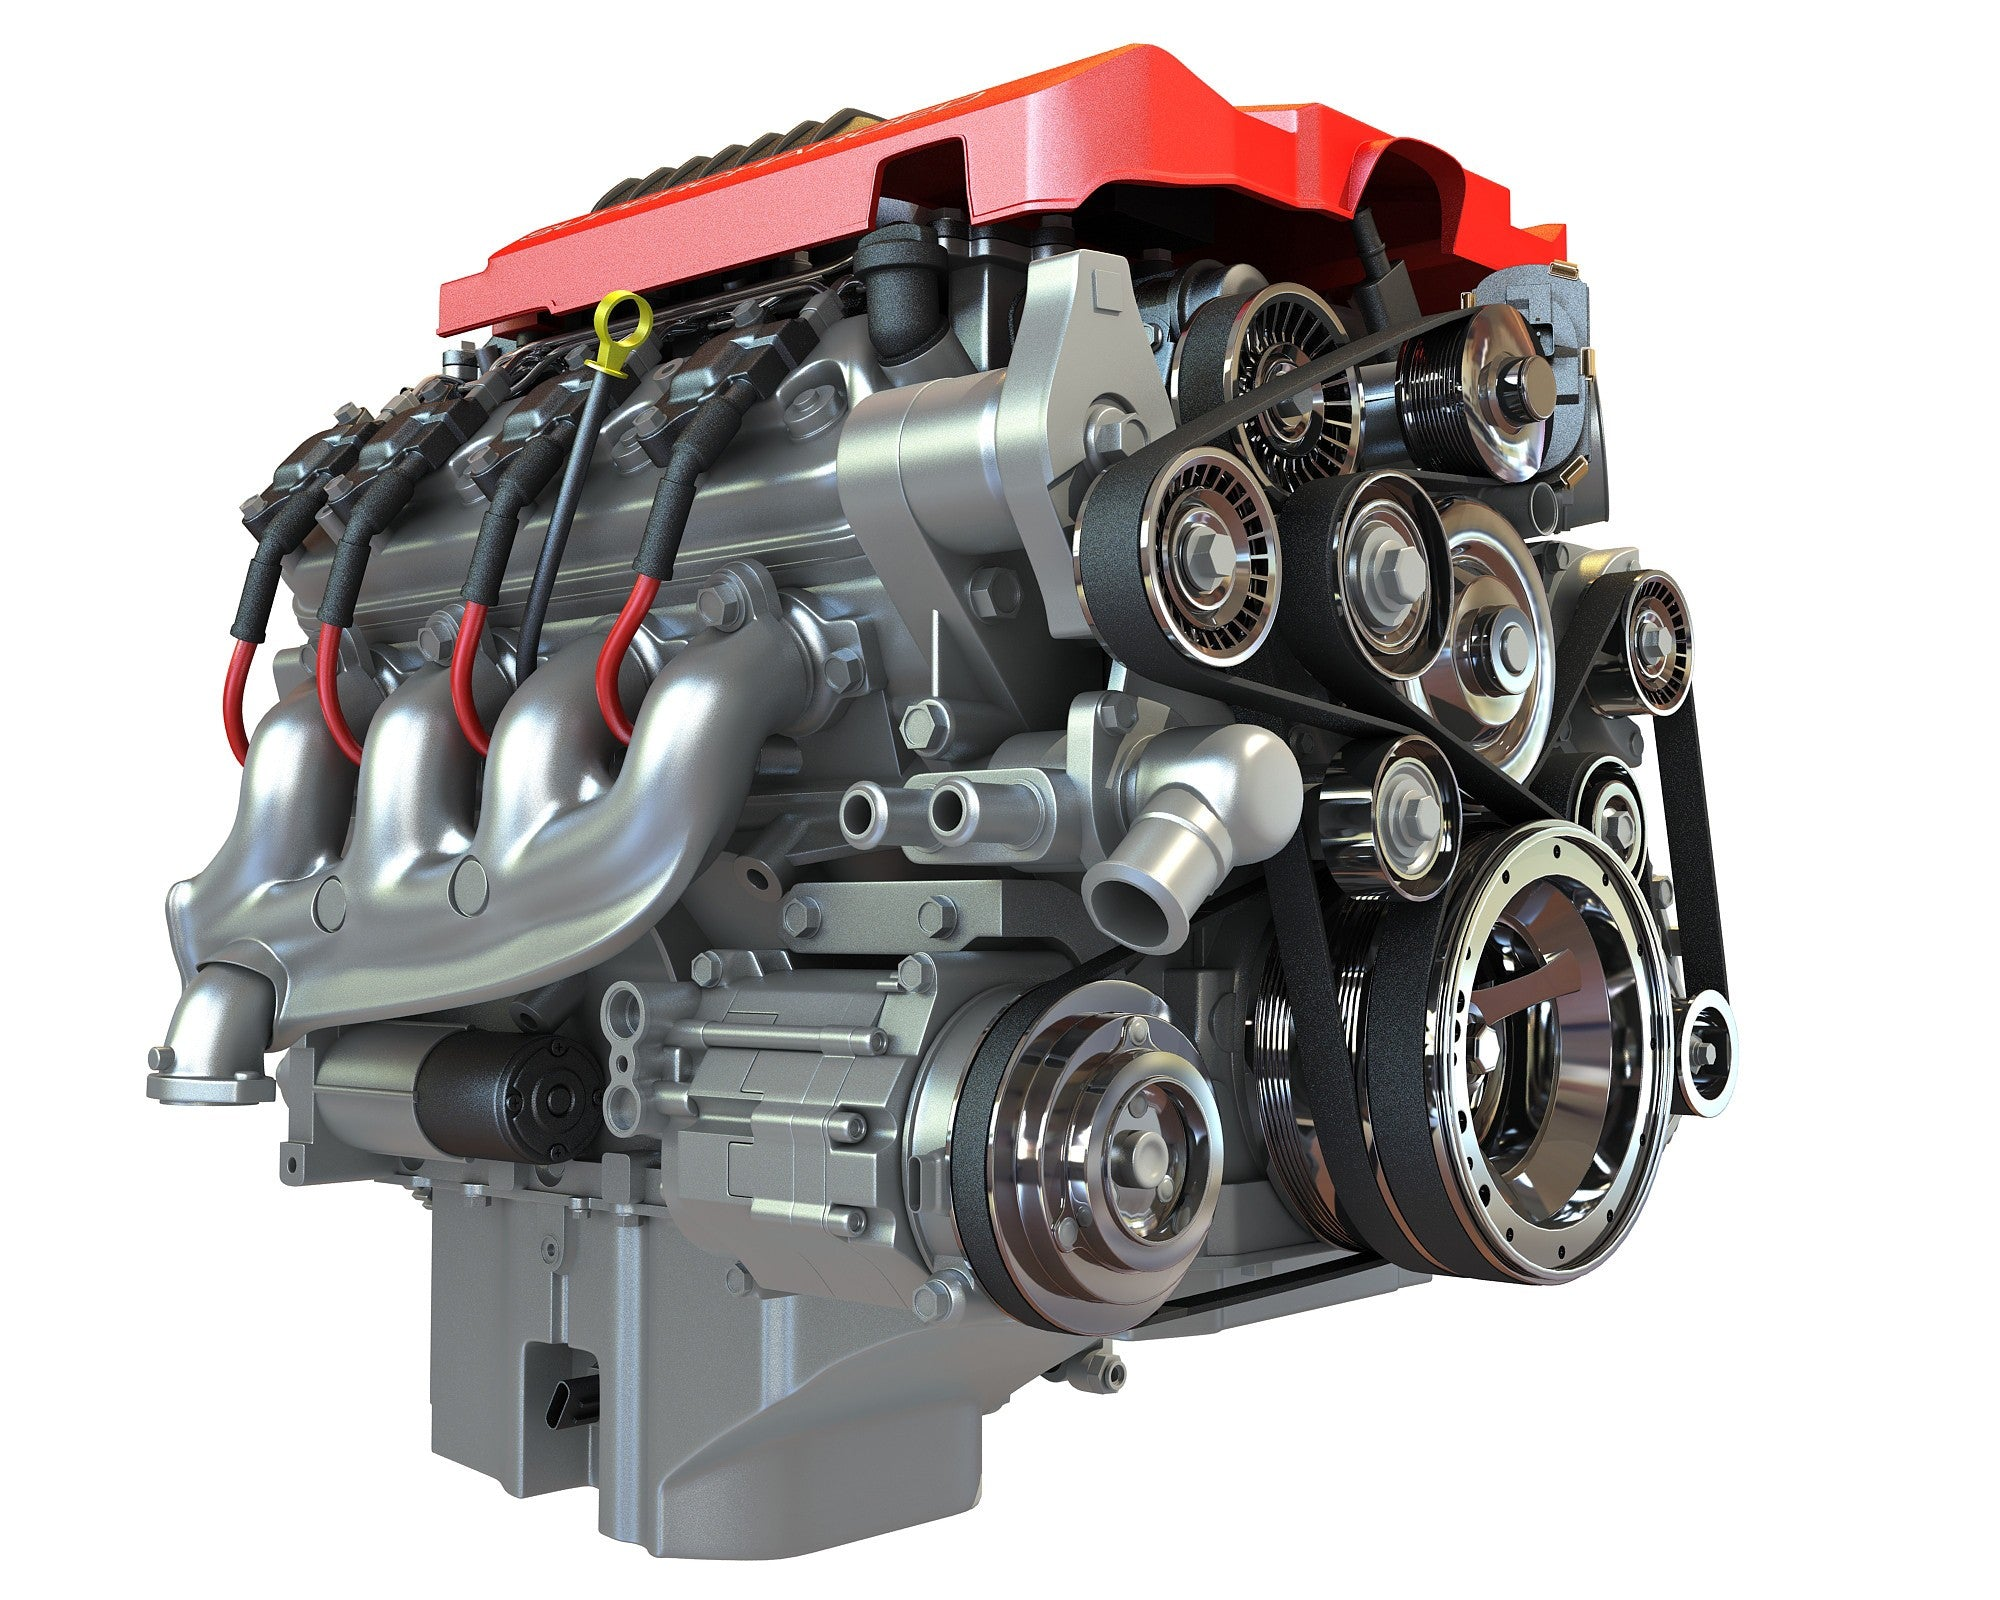 Chevrolet Camaro V8 3D Engine Model